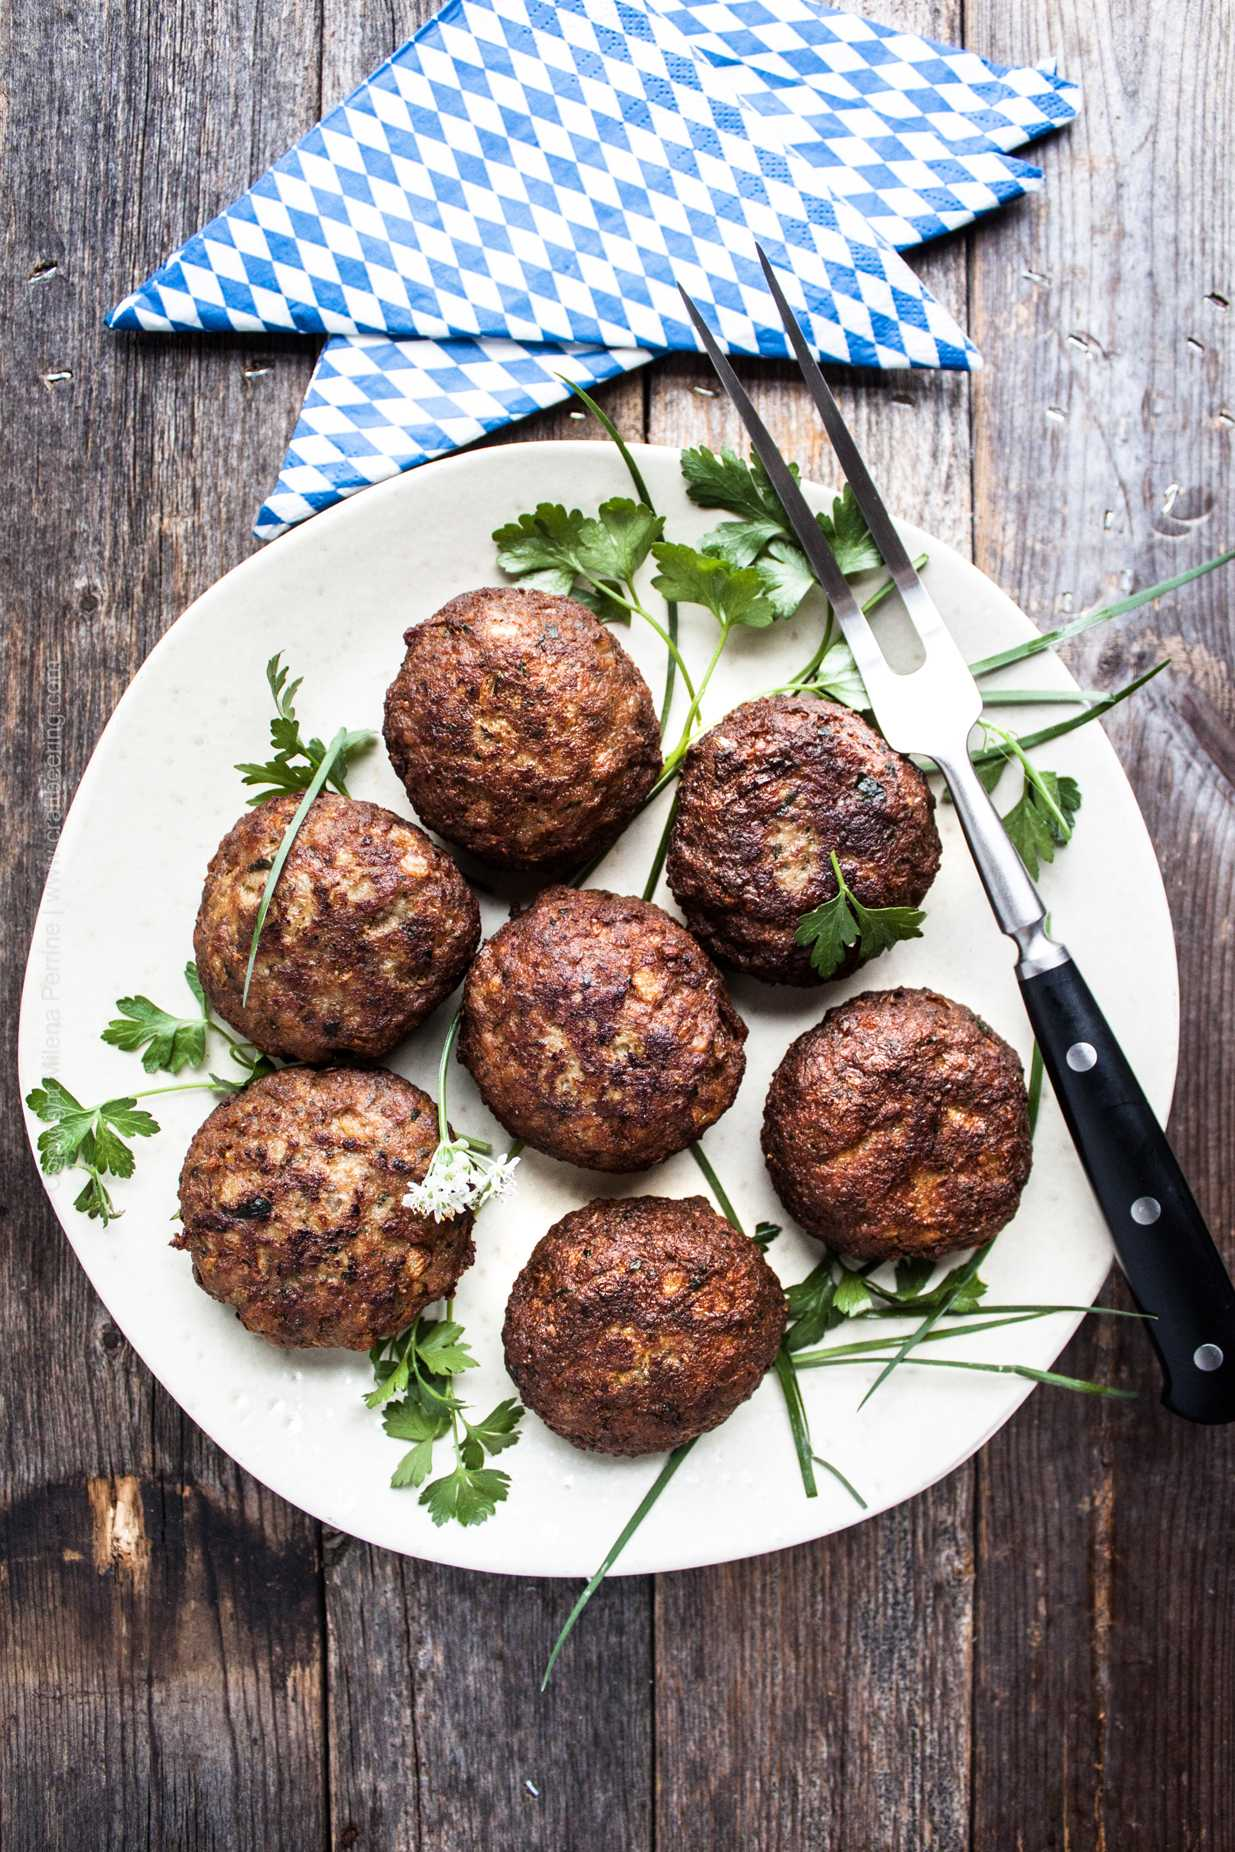 German fried hamburger patties - Frikadellen